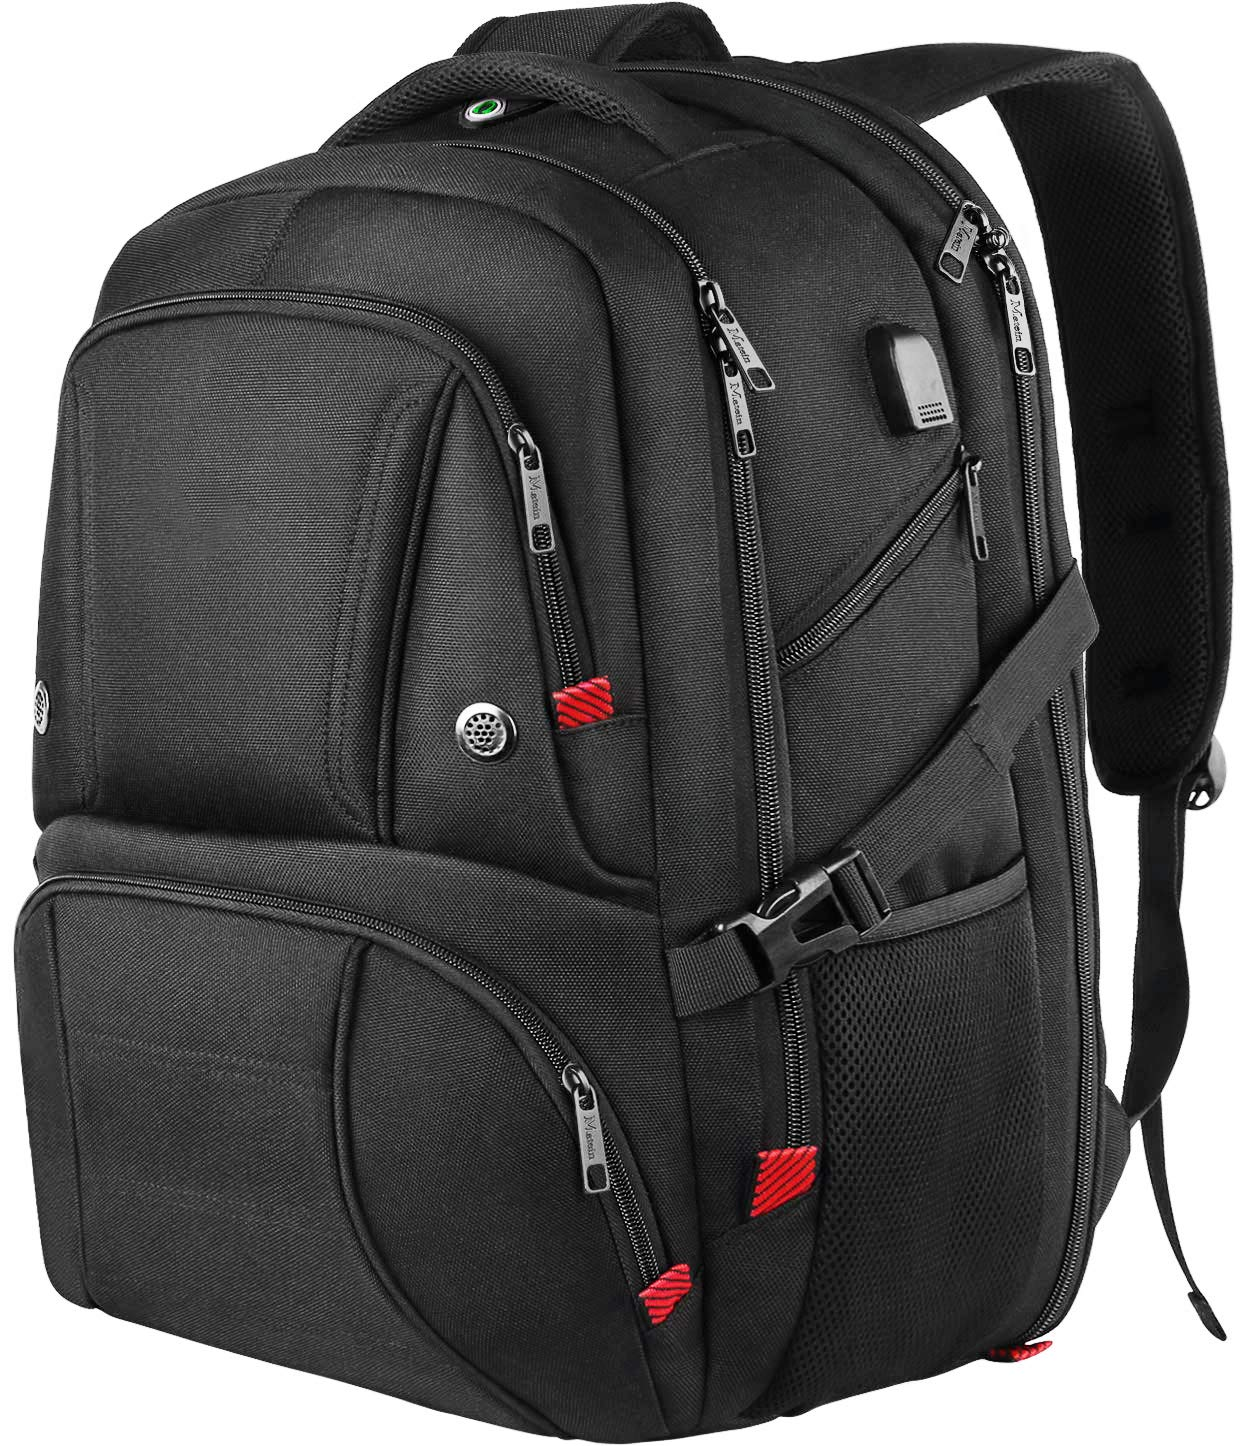 Extra Large School Laptop Backpack for Men, 18.4 Inch Durable College Backpack with USB Charging Port, TSA Friendly Large Travel Backpack for Men Women Student, Black by Deegotech